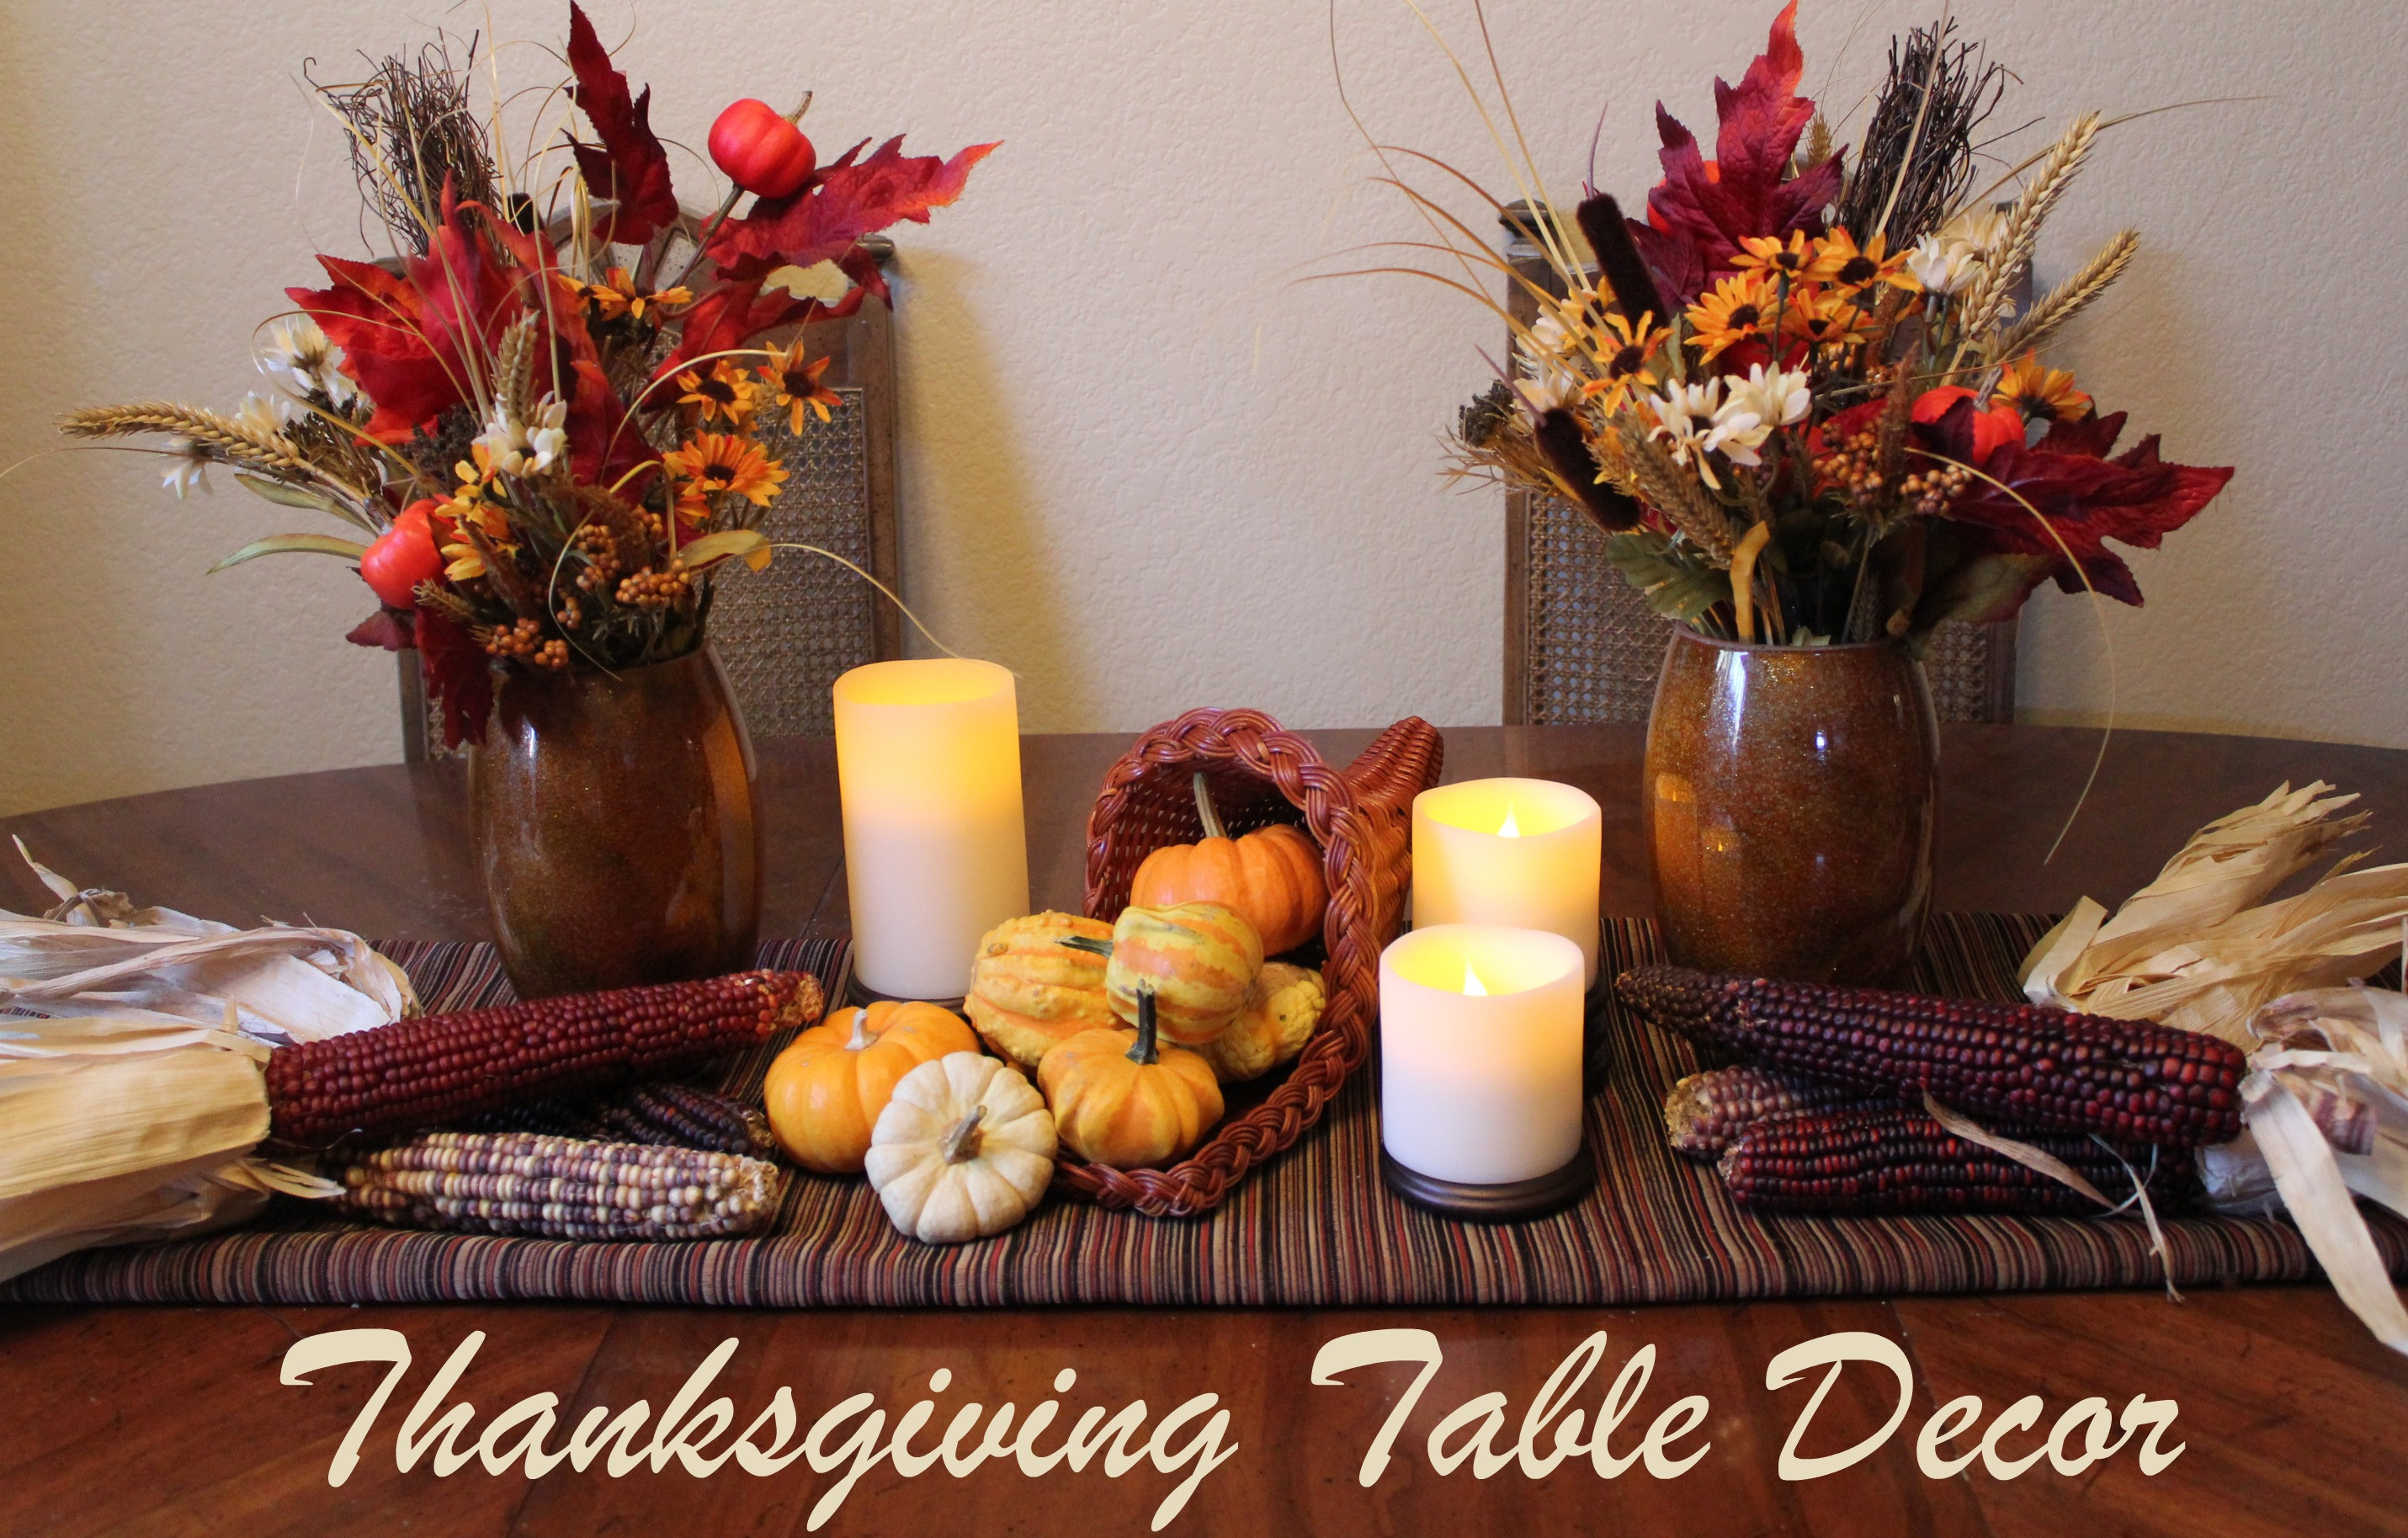 Best ideas about DIY Thanksgiving Table Decorations . Save or Pin Cornucopia of Creativity DIY Thanksgiving Table Decor Now.